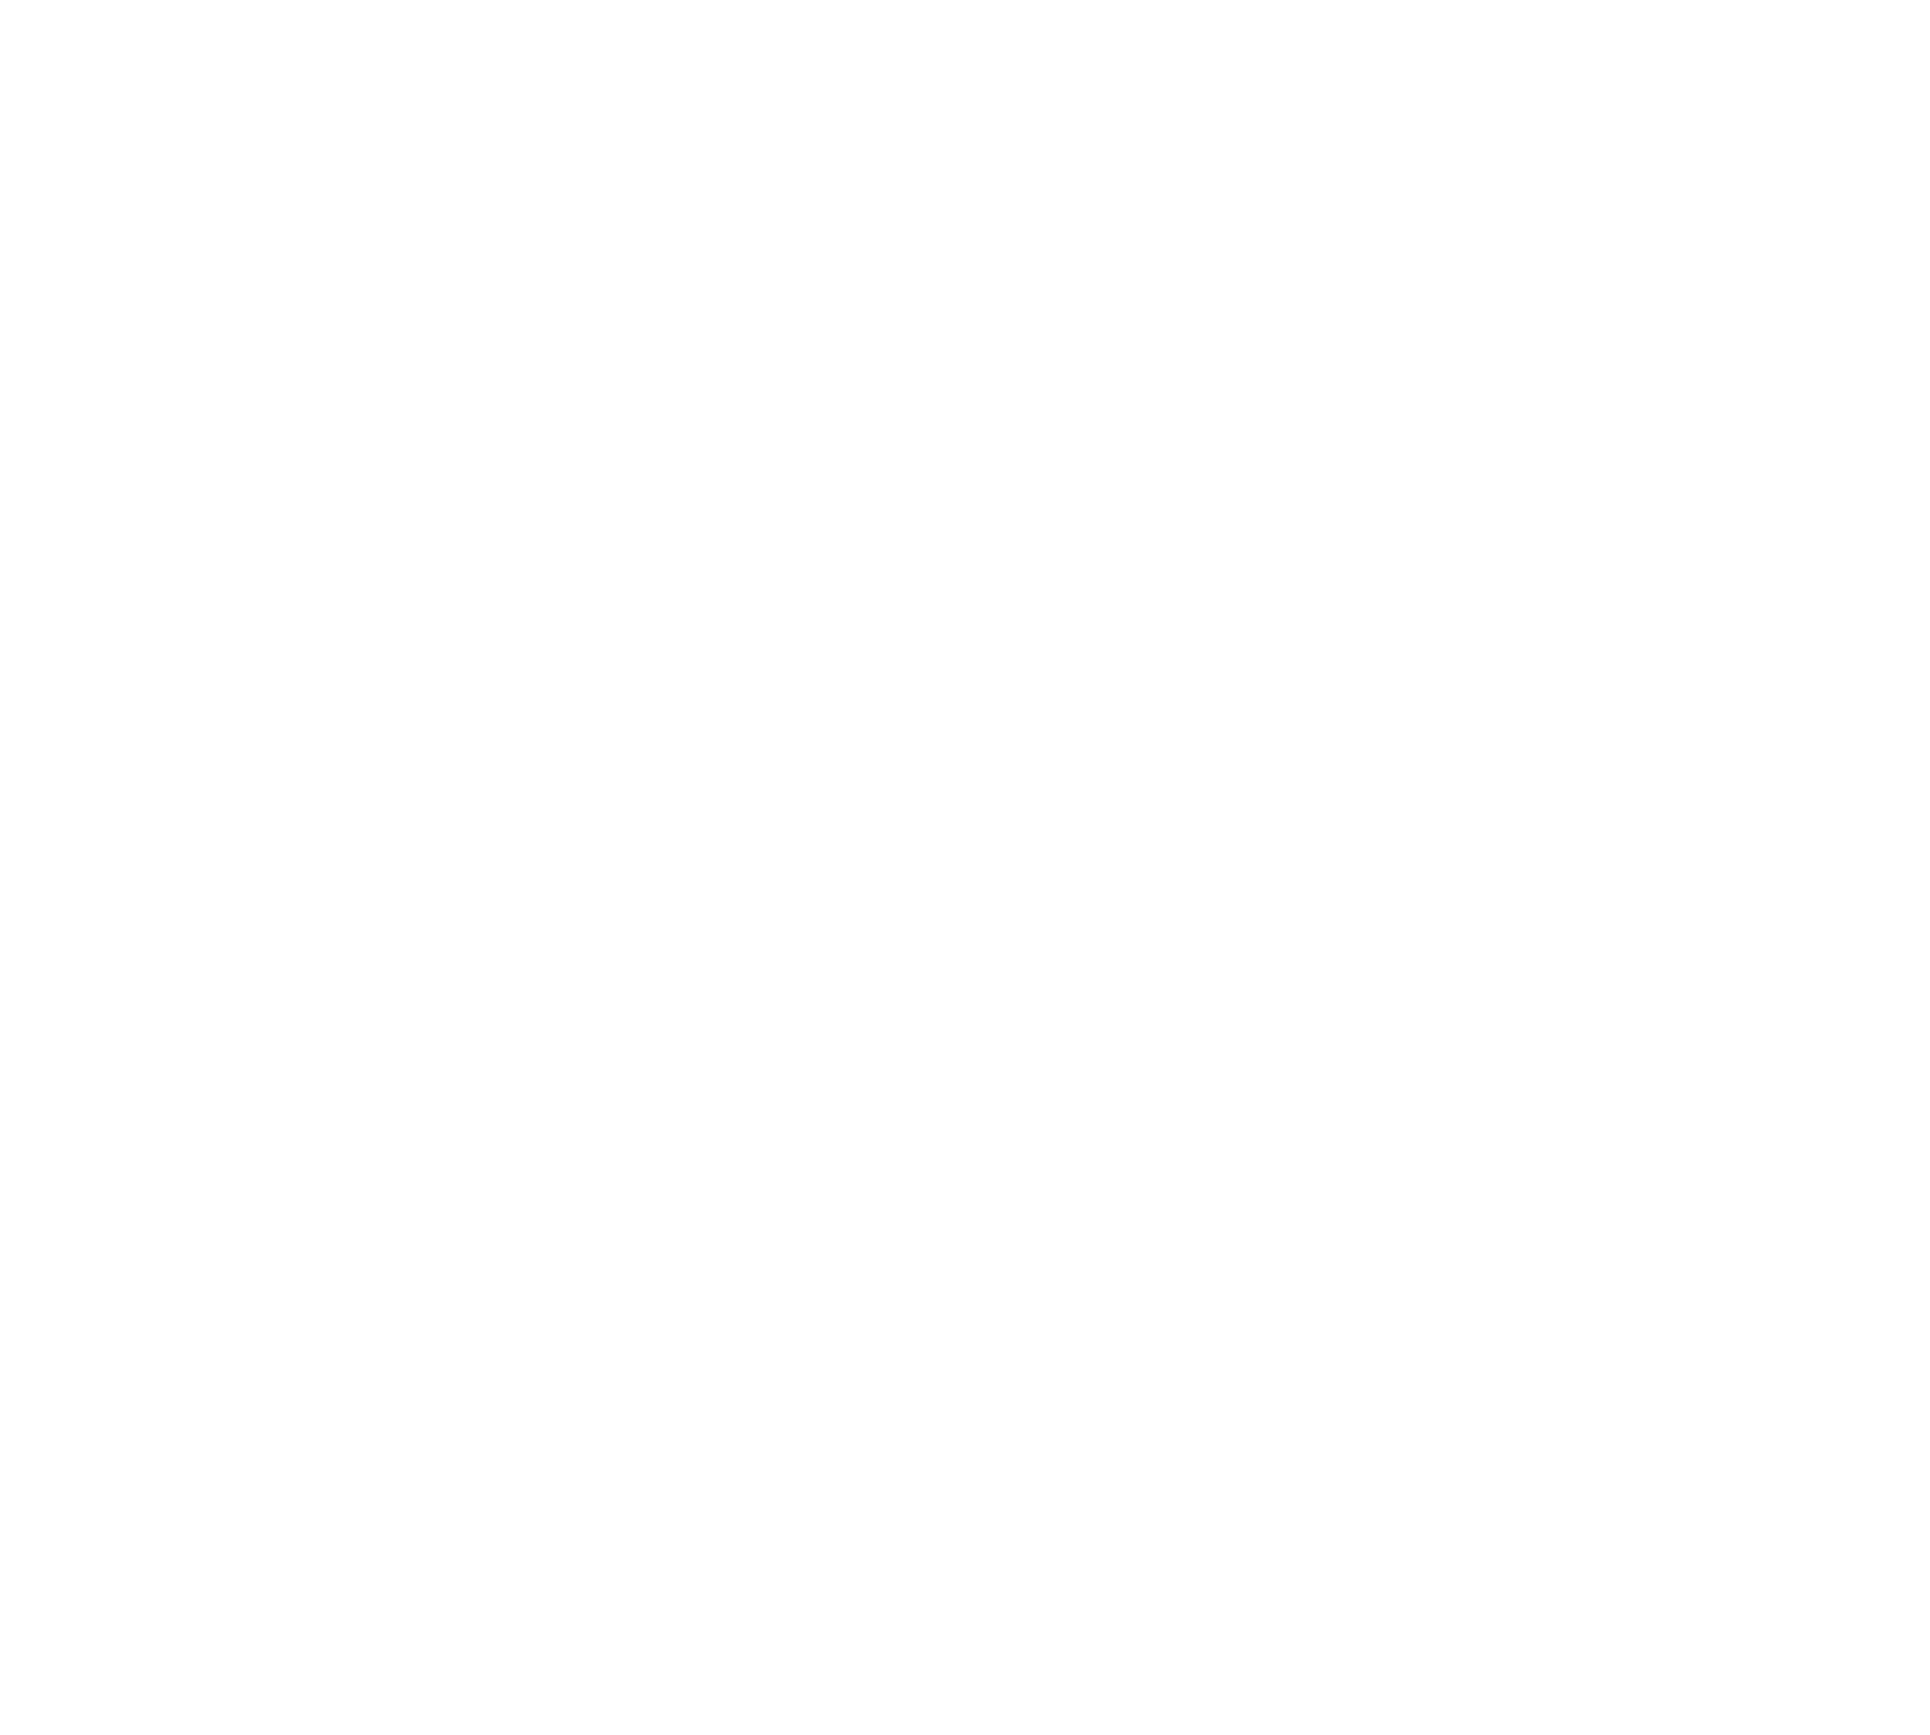 Logo large showing the concept of Home 2